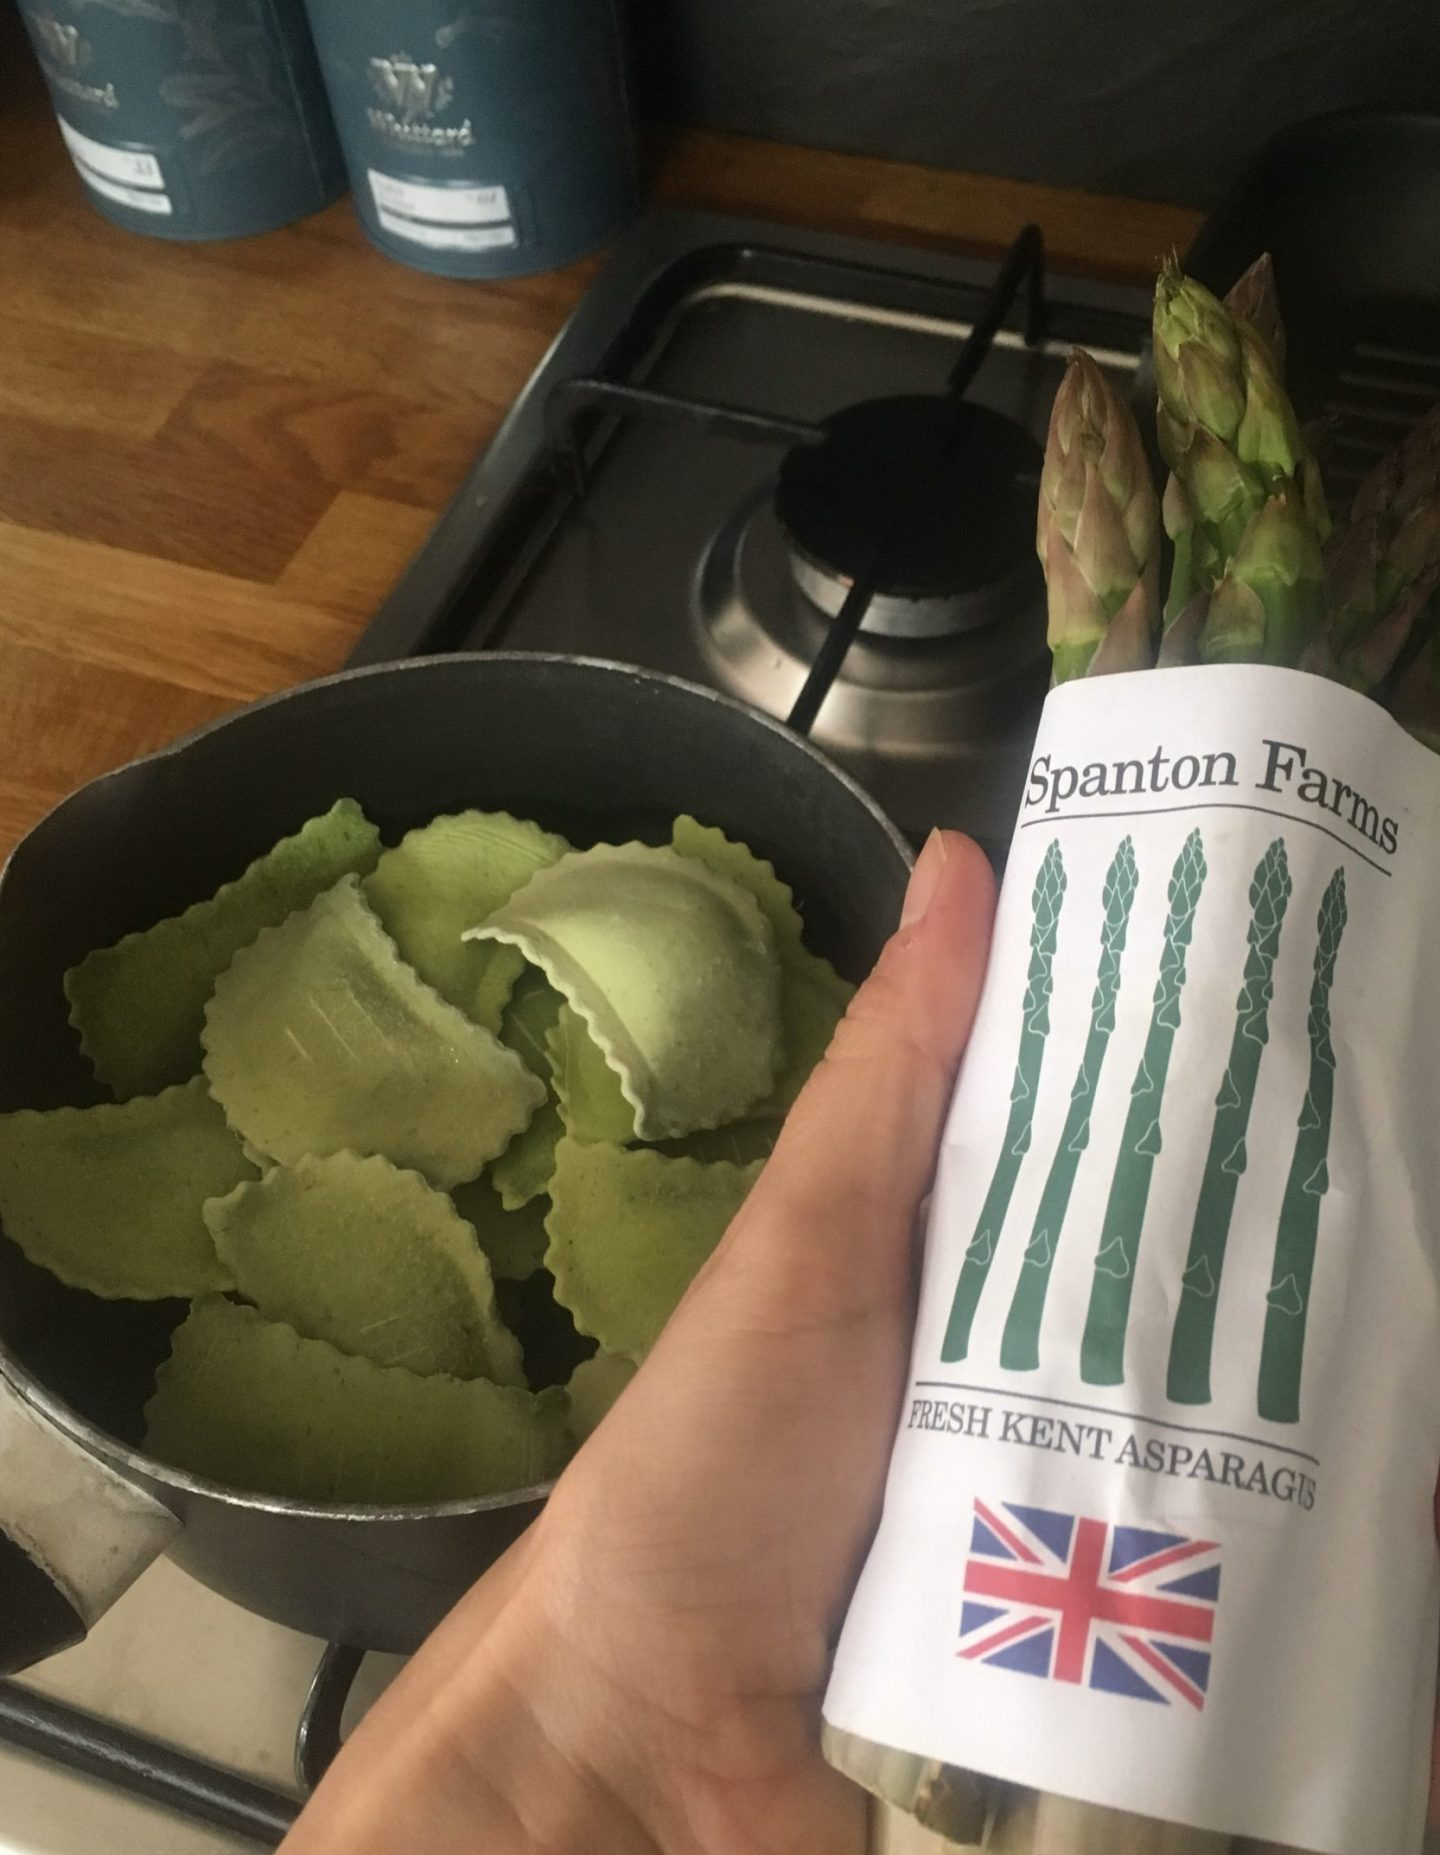 Asparagus and pasta